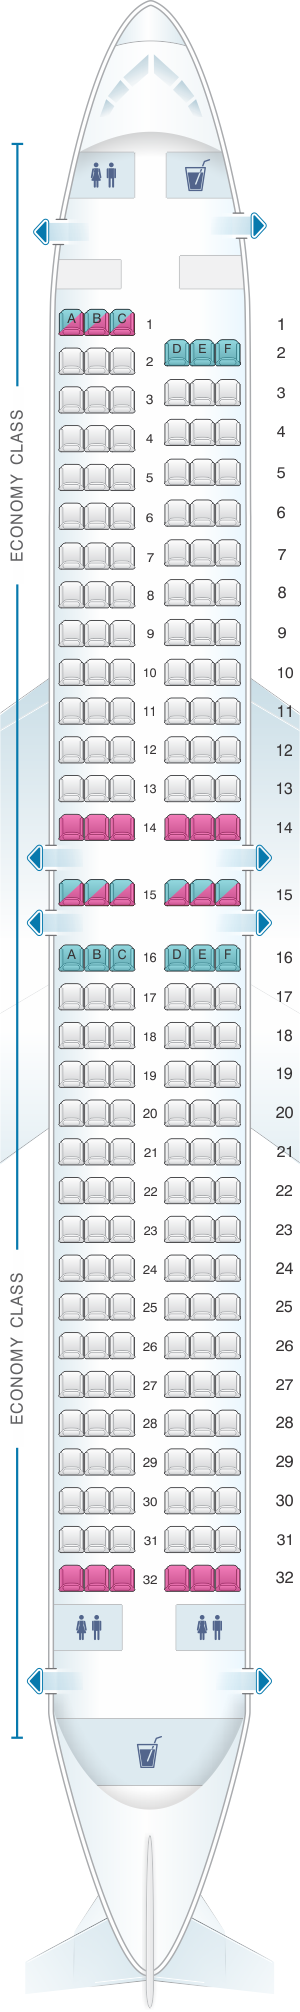 Seat map for TUIfly Boeing B737 800